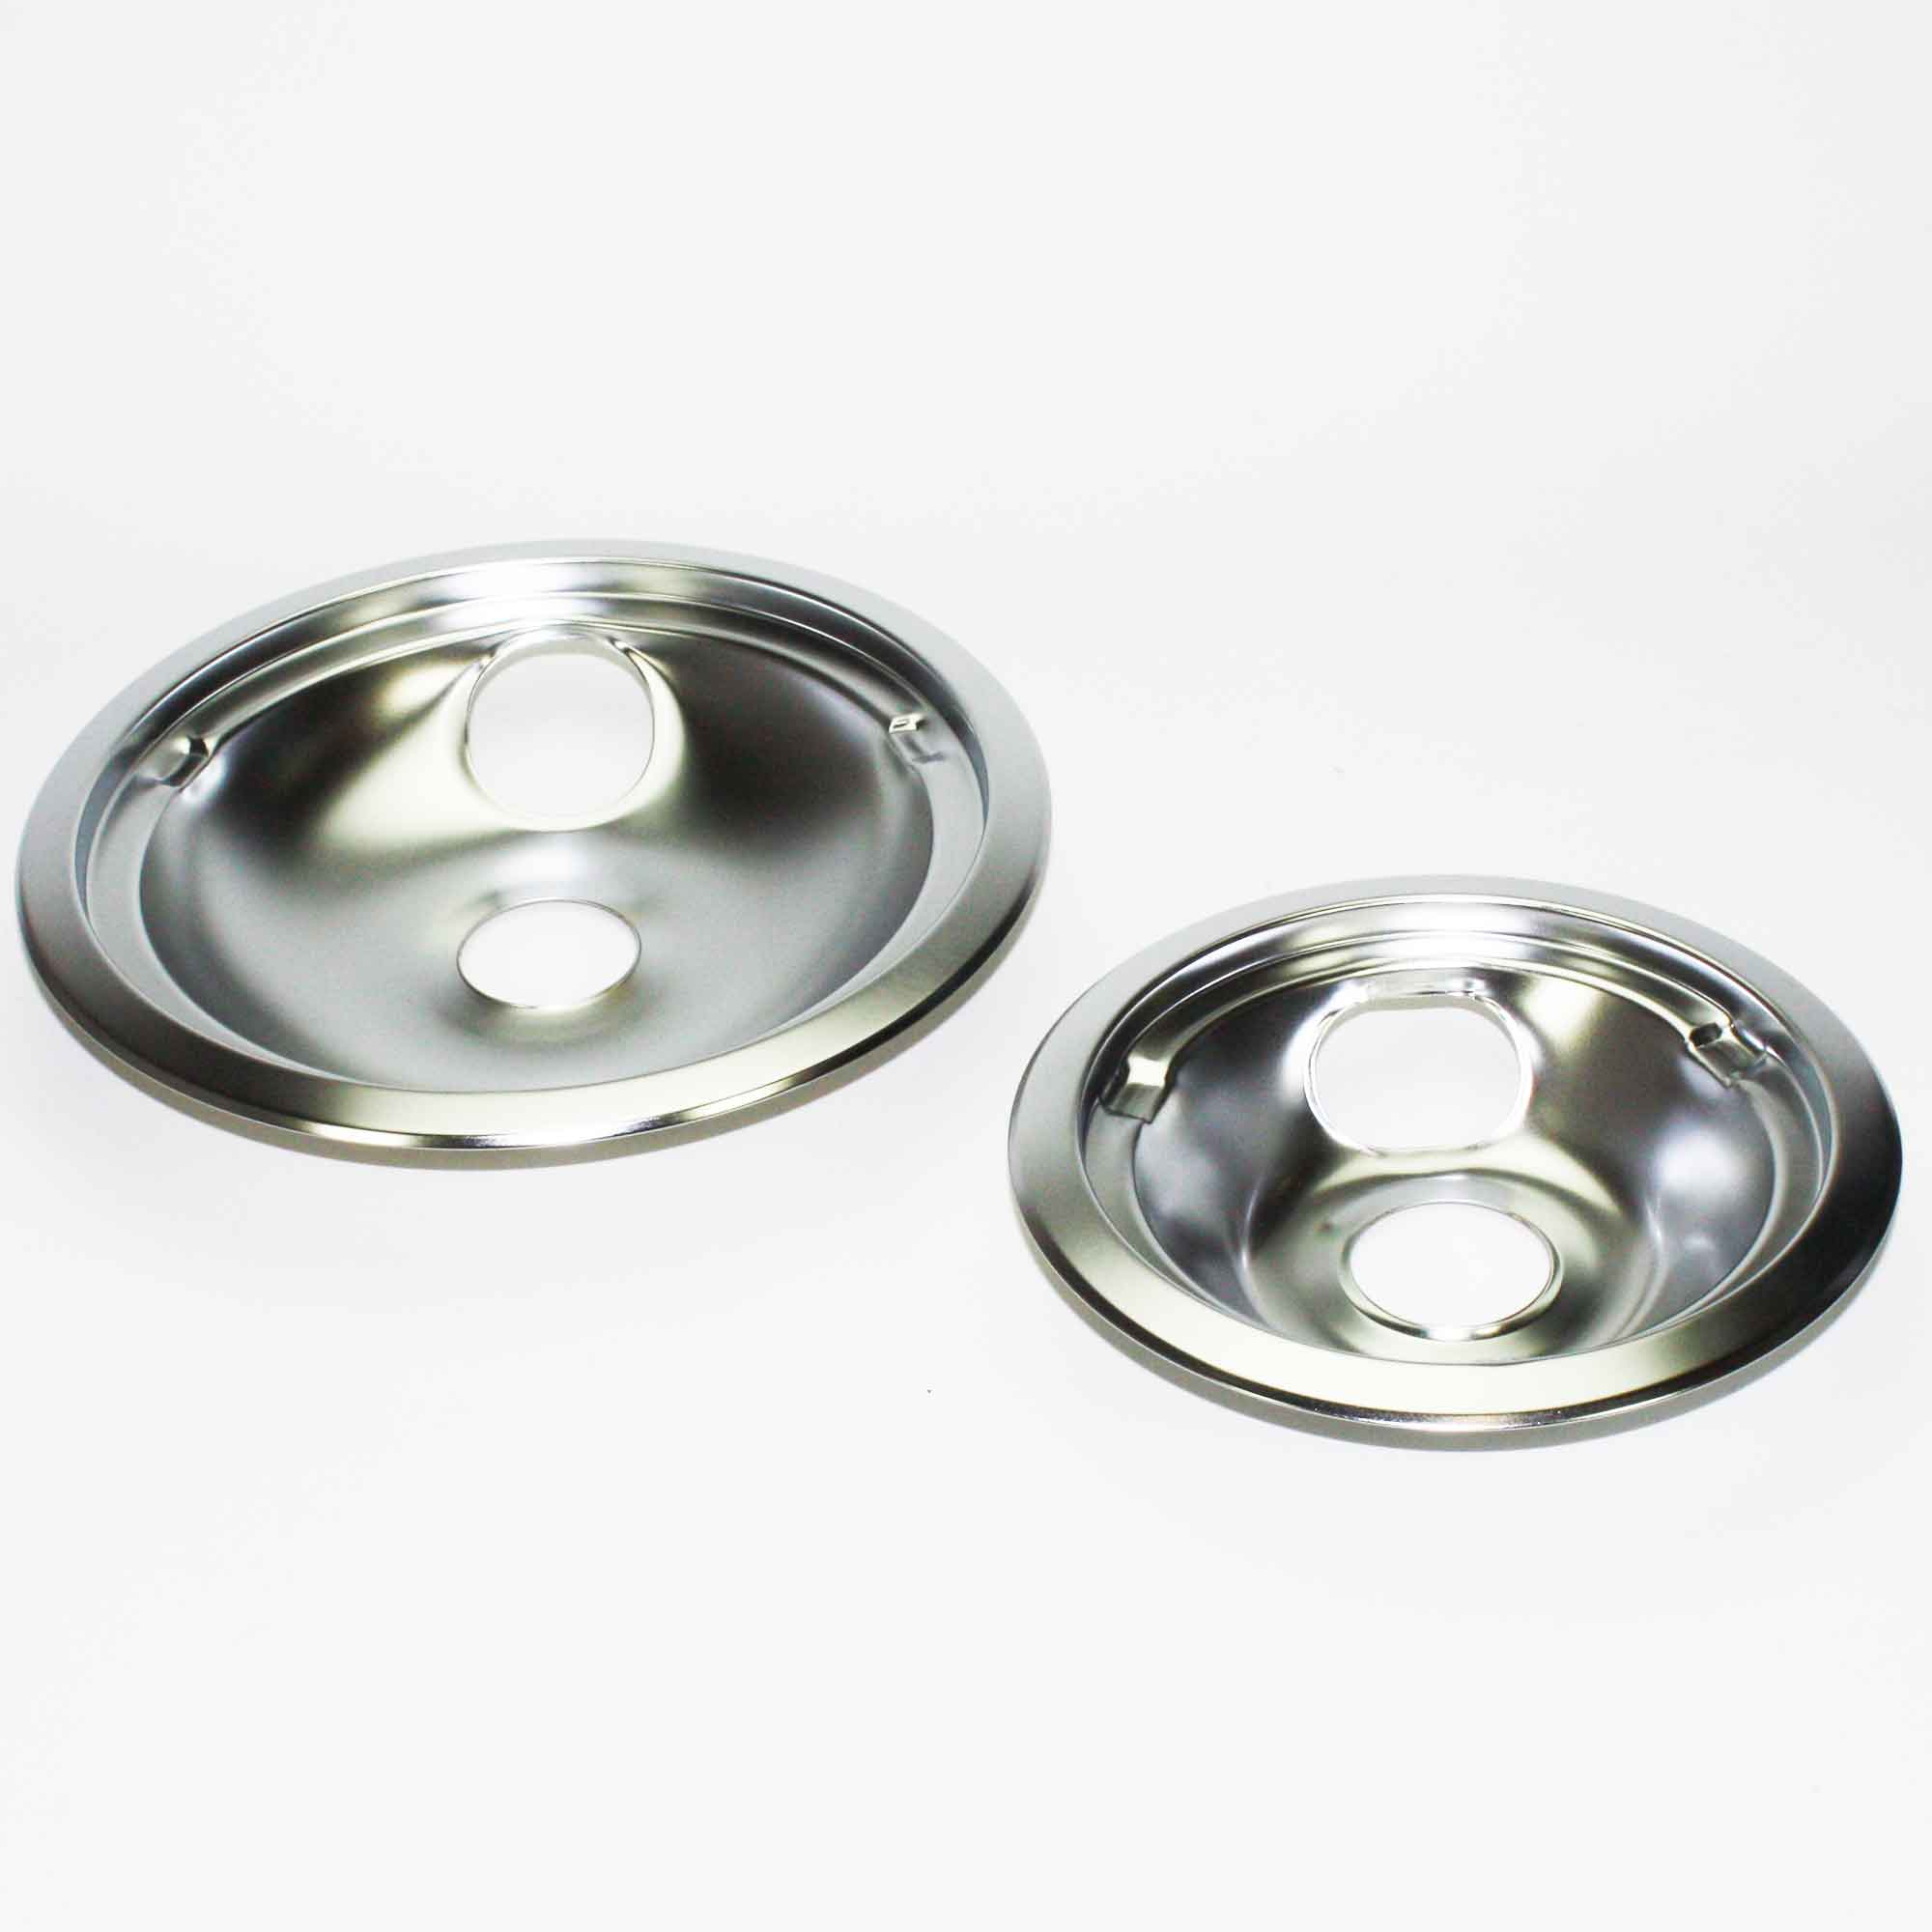 Range Kleen 2-Piece Drip Bowl, Style C fits Plug-In Electric ...